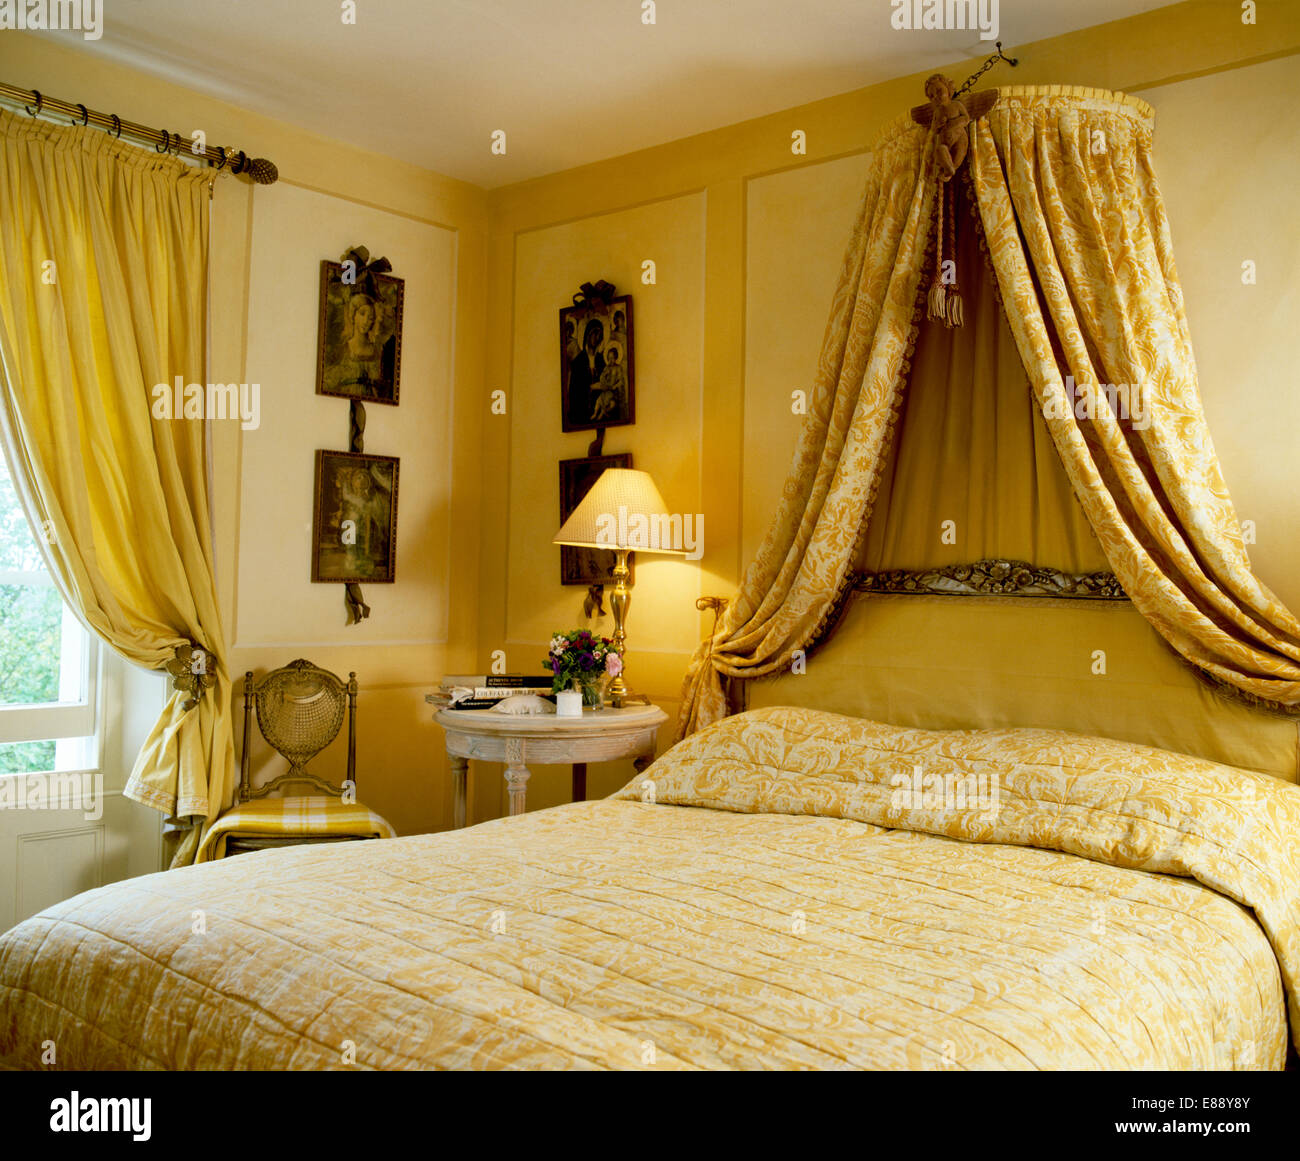 Pale Yellow Bedroom Coronet With Patterned Yellow Drapes Above Bed With Pale Yellow